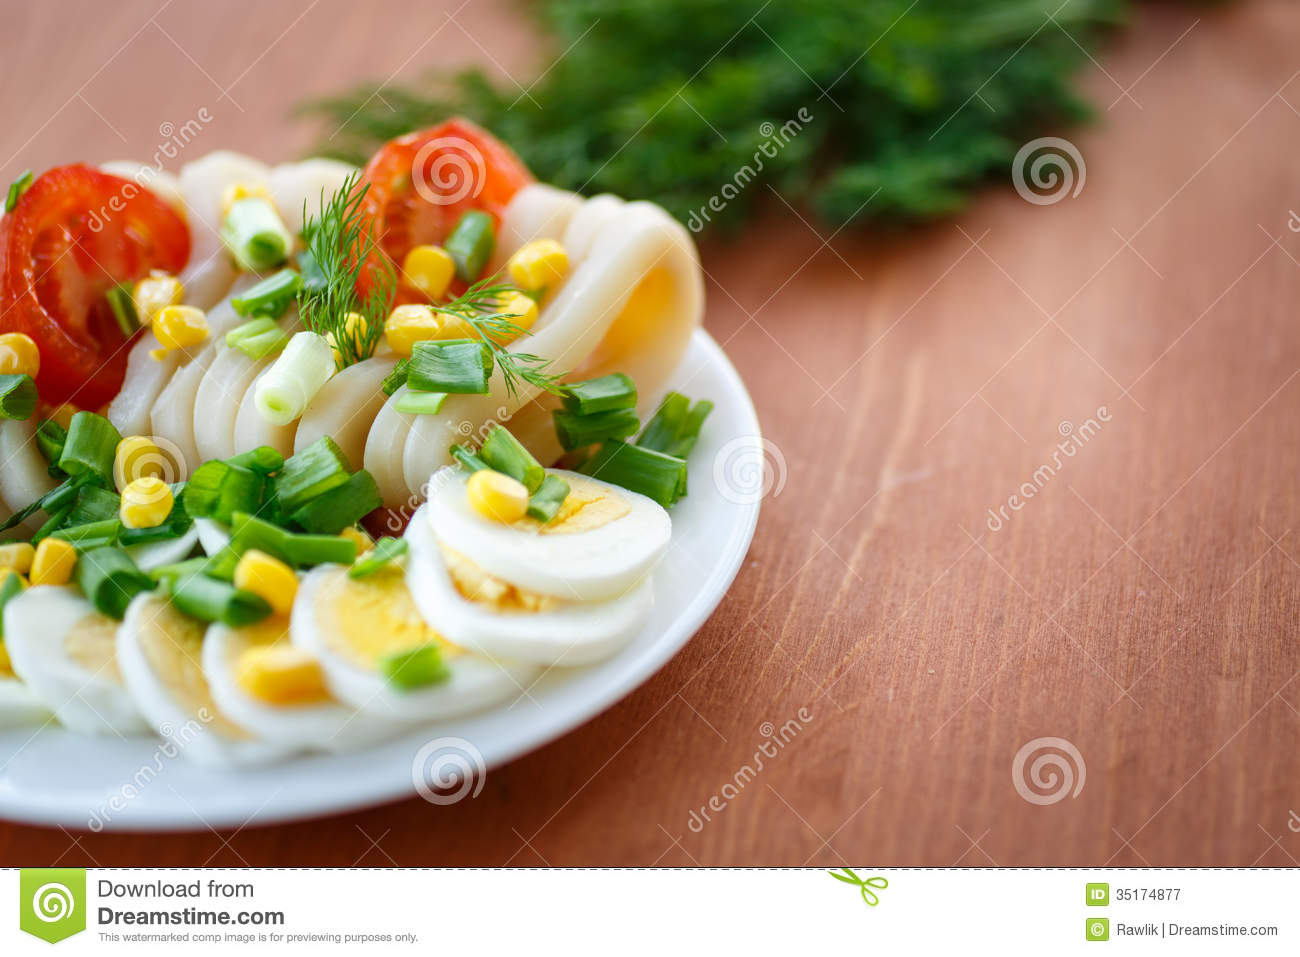 Egg salad and squid with green onions.